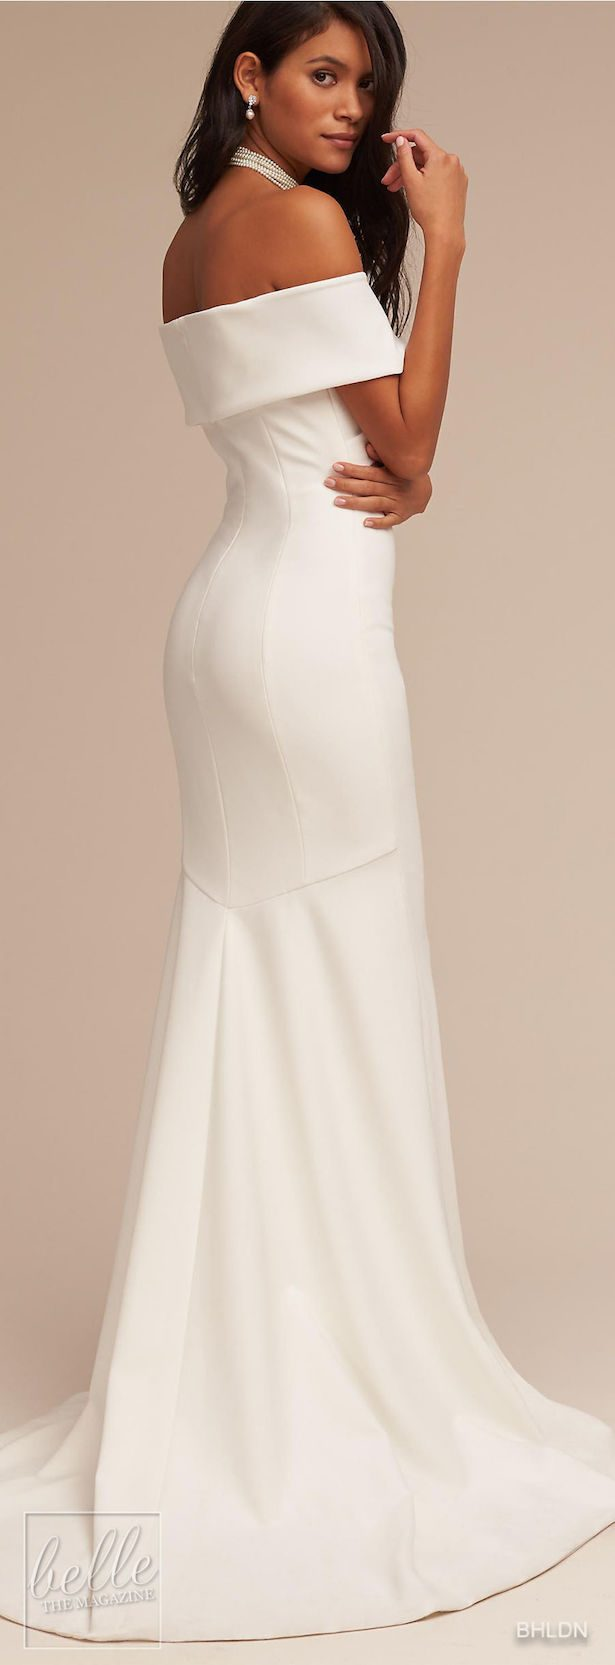 6b6445a652e Our Favorite Wedding Dresses from BHLDN - BridalPulse